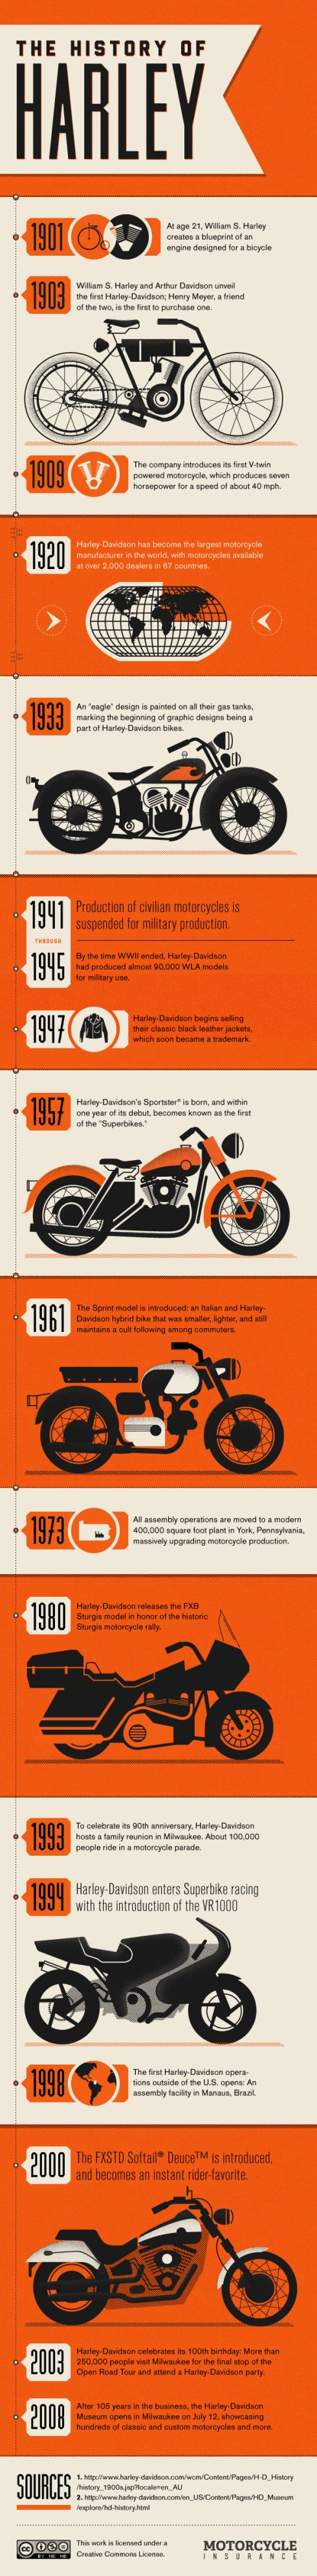 Unique Infographic Design, The History Of Harley via @bbvcoverlover #Infographic #Design #Harley-Davidson